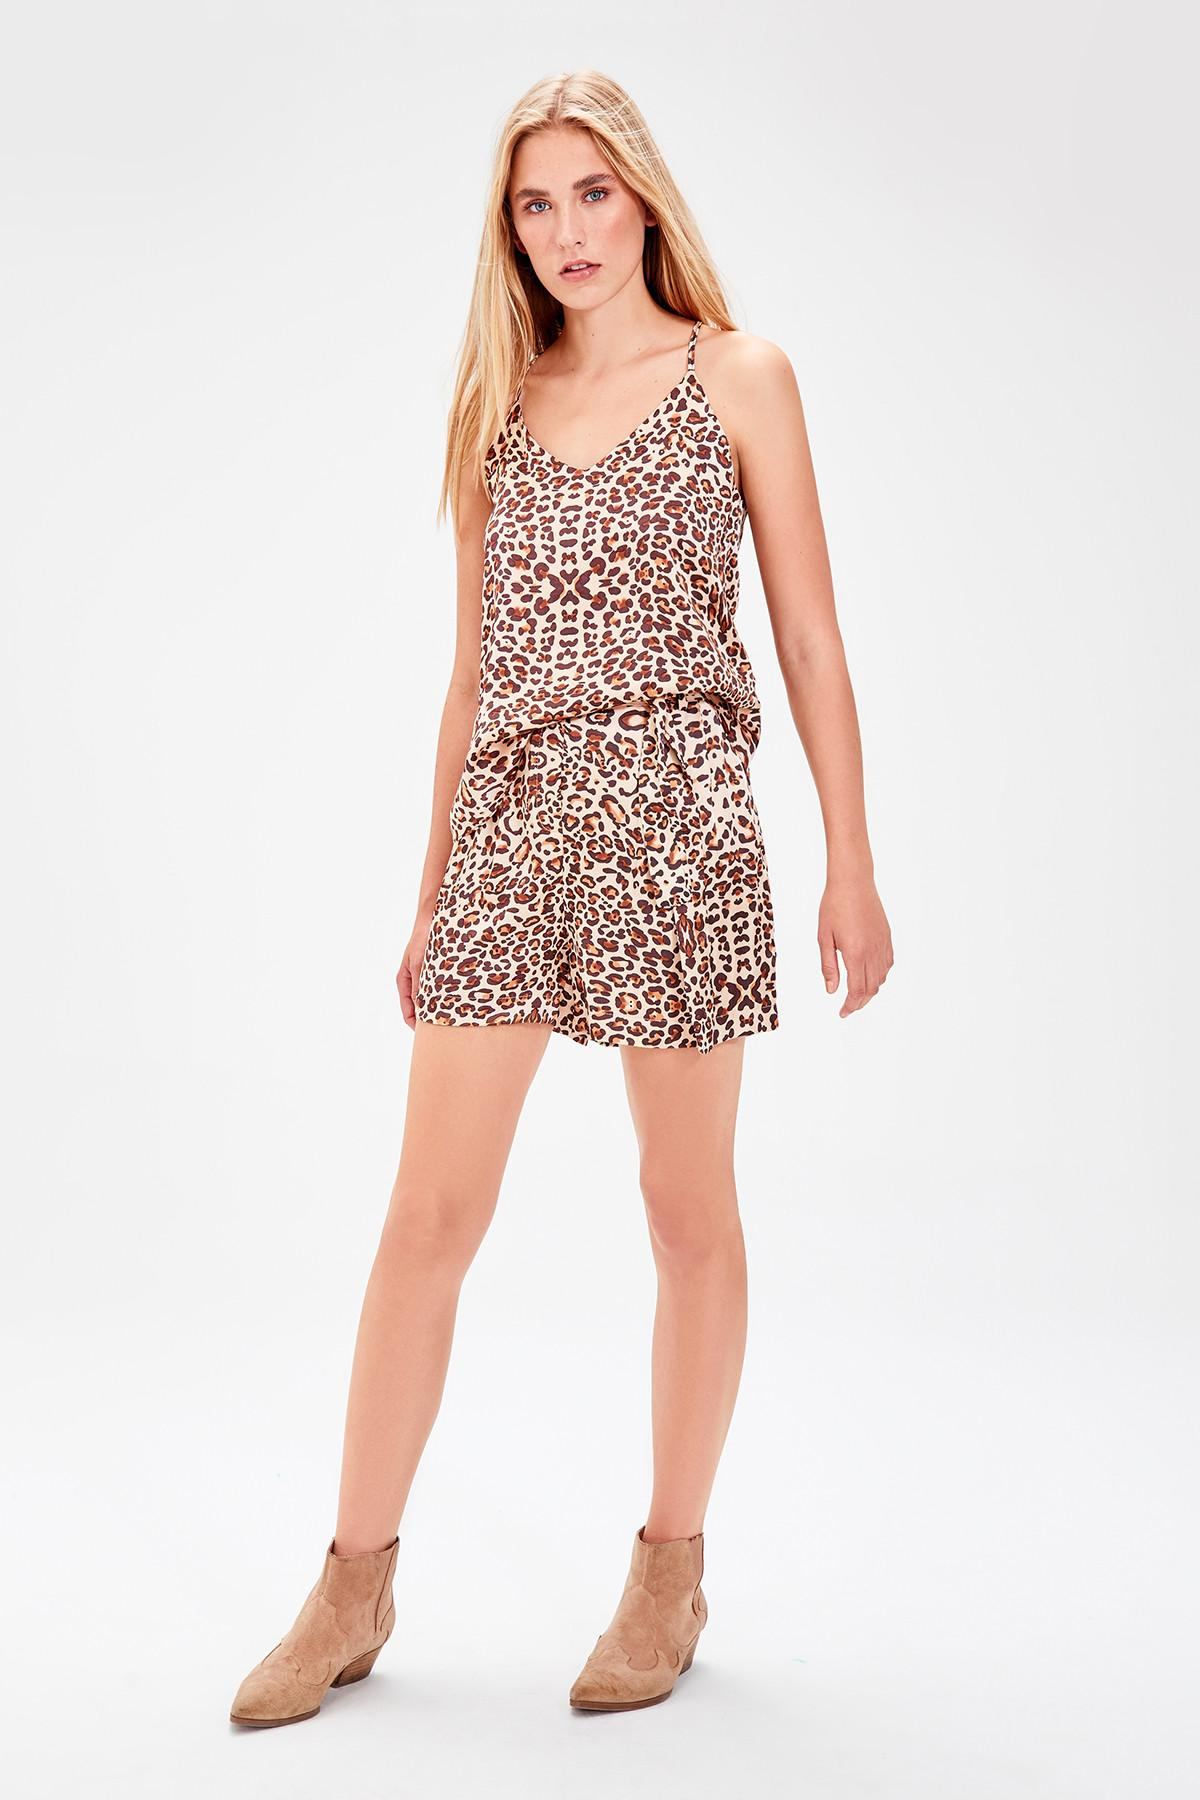 Trendyol Brown Leopard Pattern Shorts TWOAW20SR0019